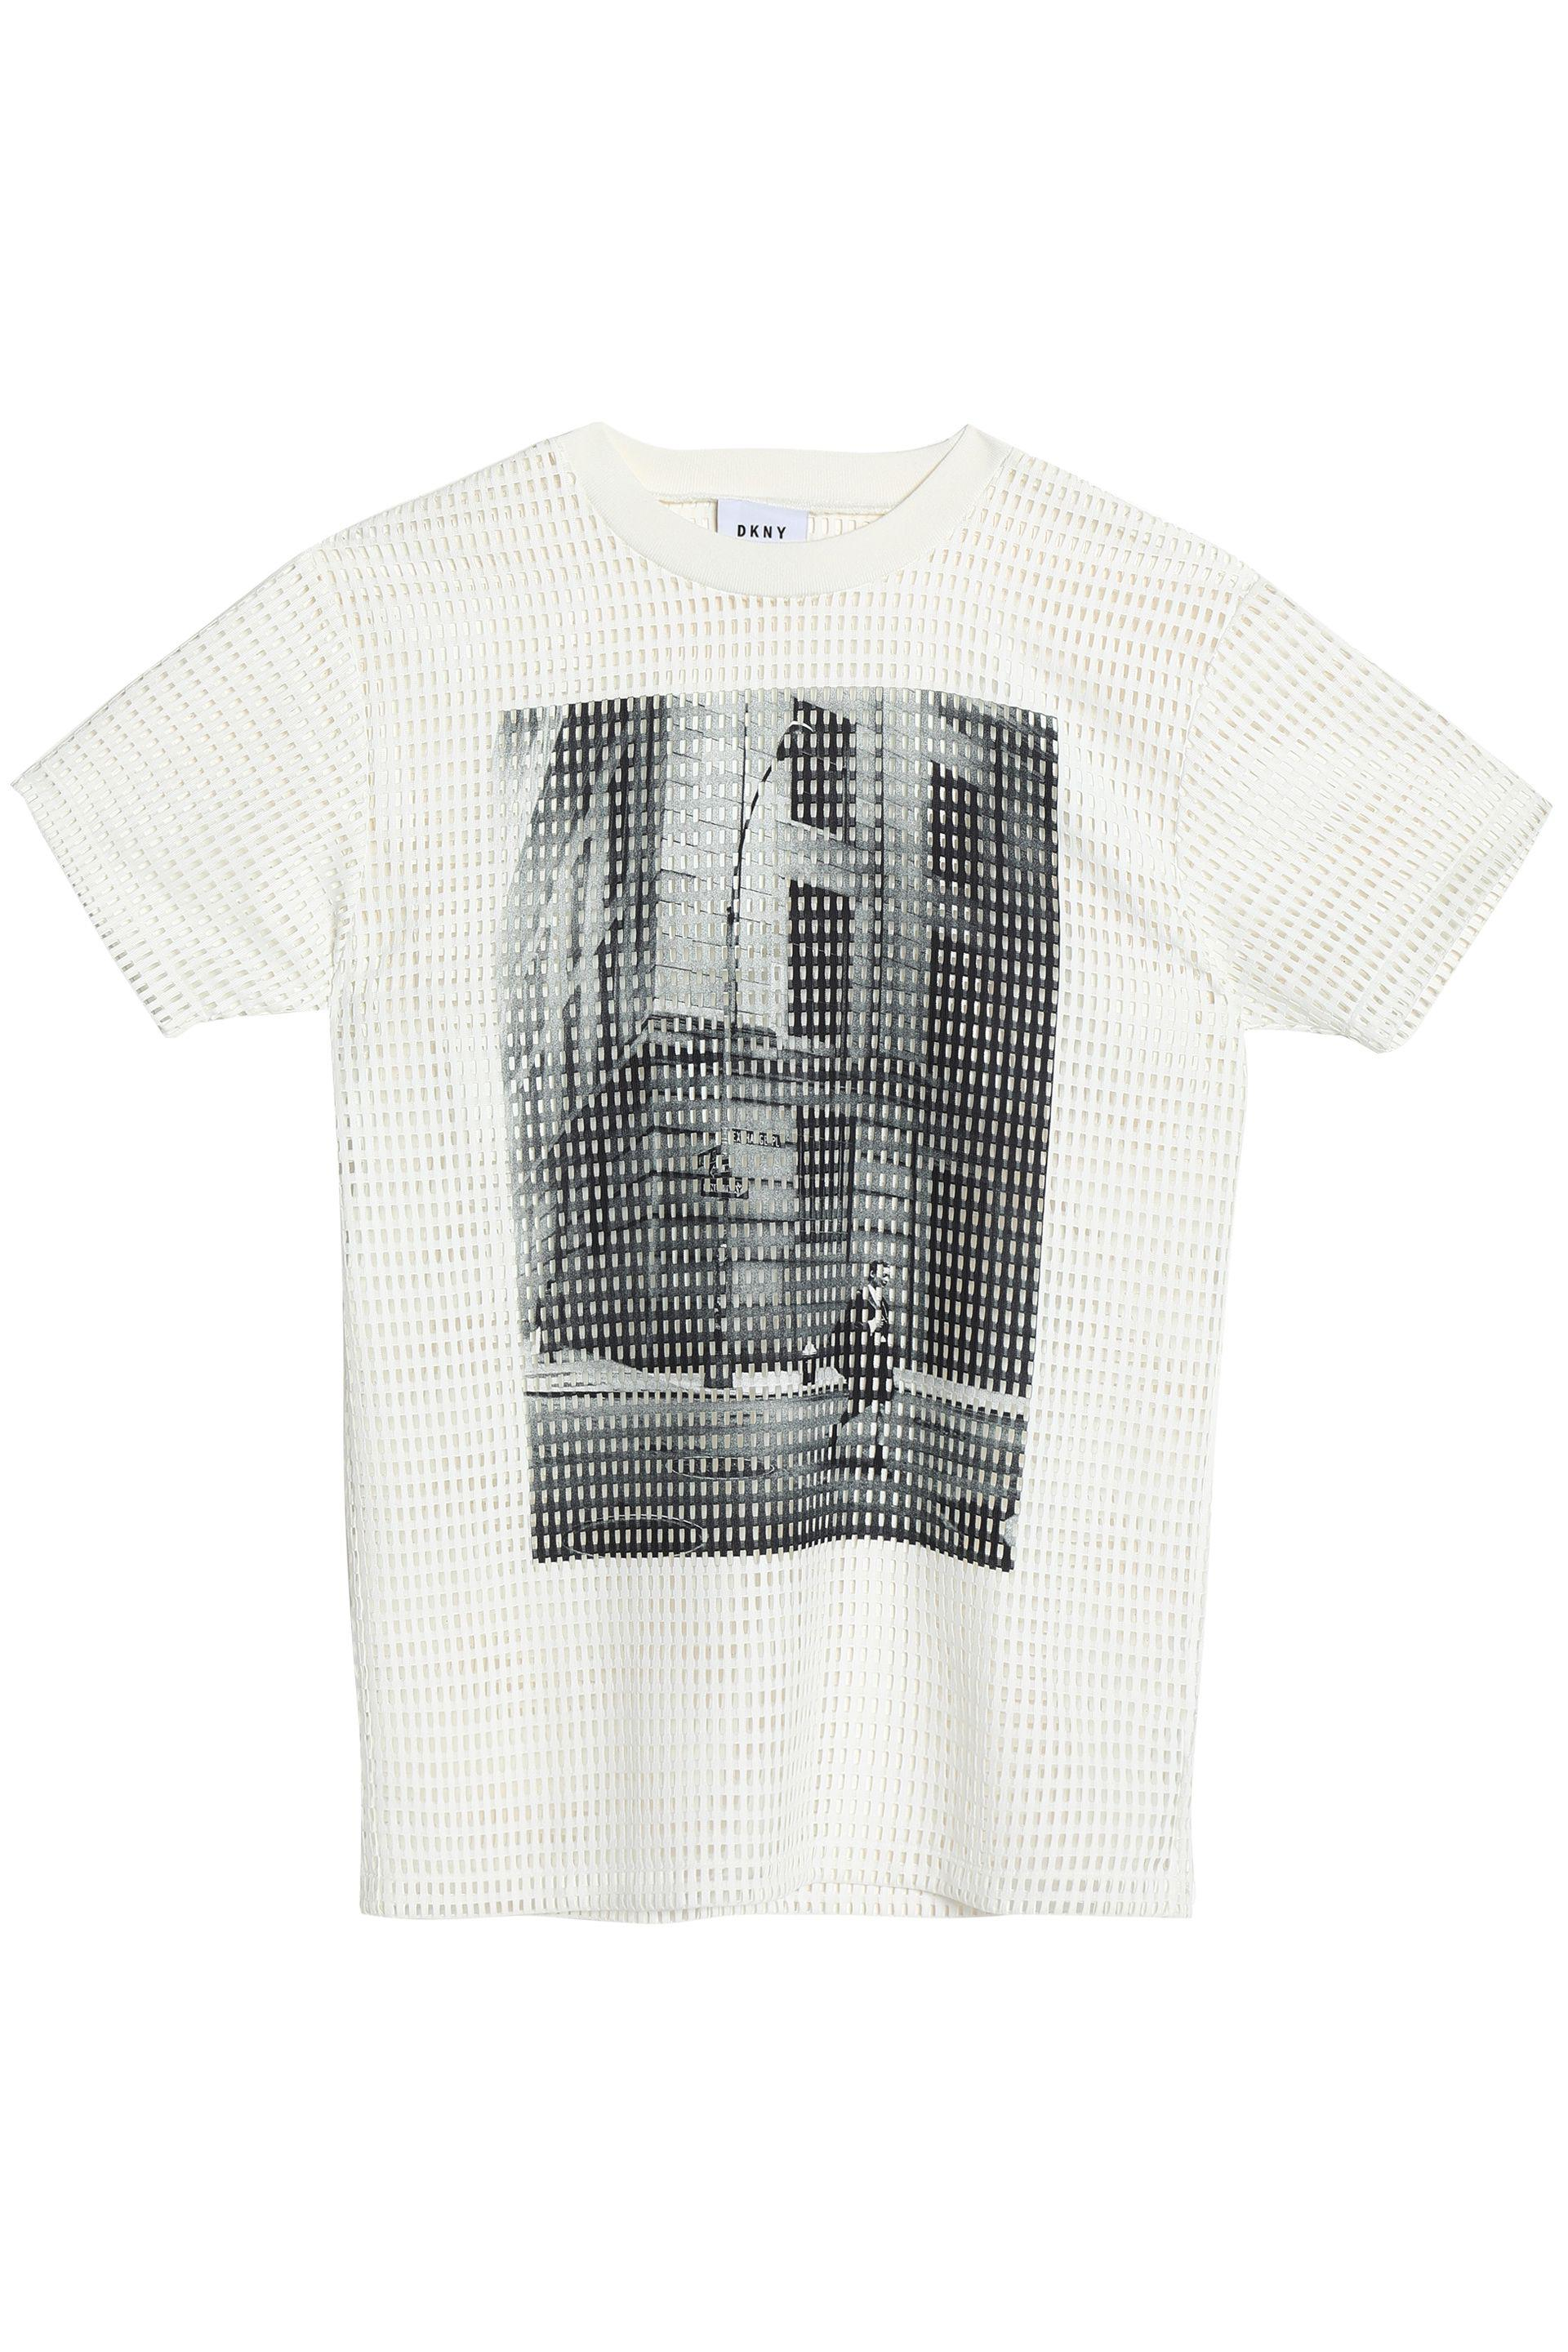 Explore Cheap Price 100% Authentic Cheap Price Dkny Woman Laser-cut Printed Jersey T-shirt Off-white Size XXS DKNY Sale For Sale Cheap 2018 Unisex XUf03